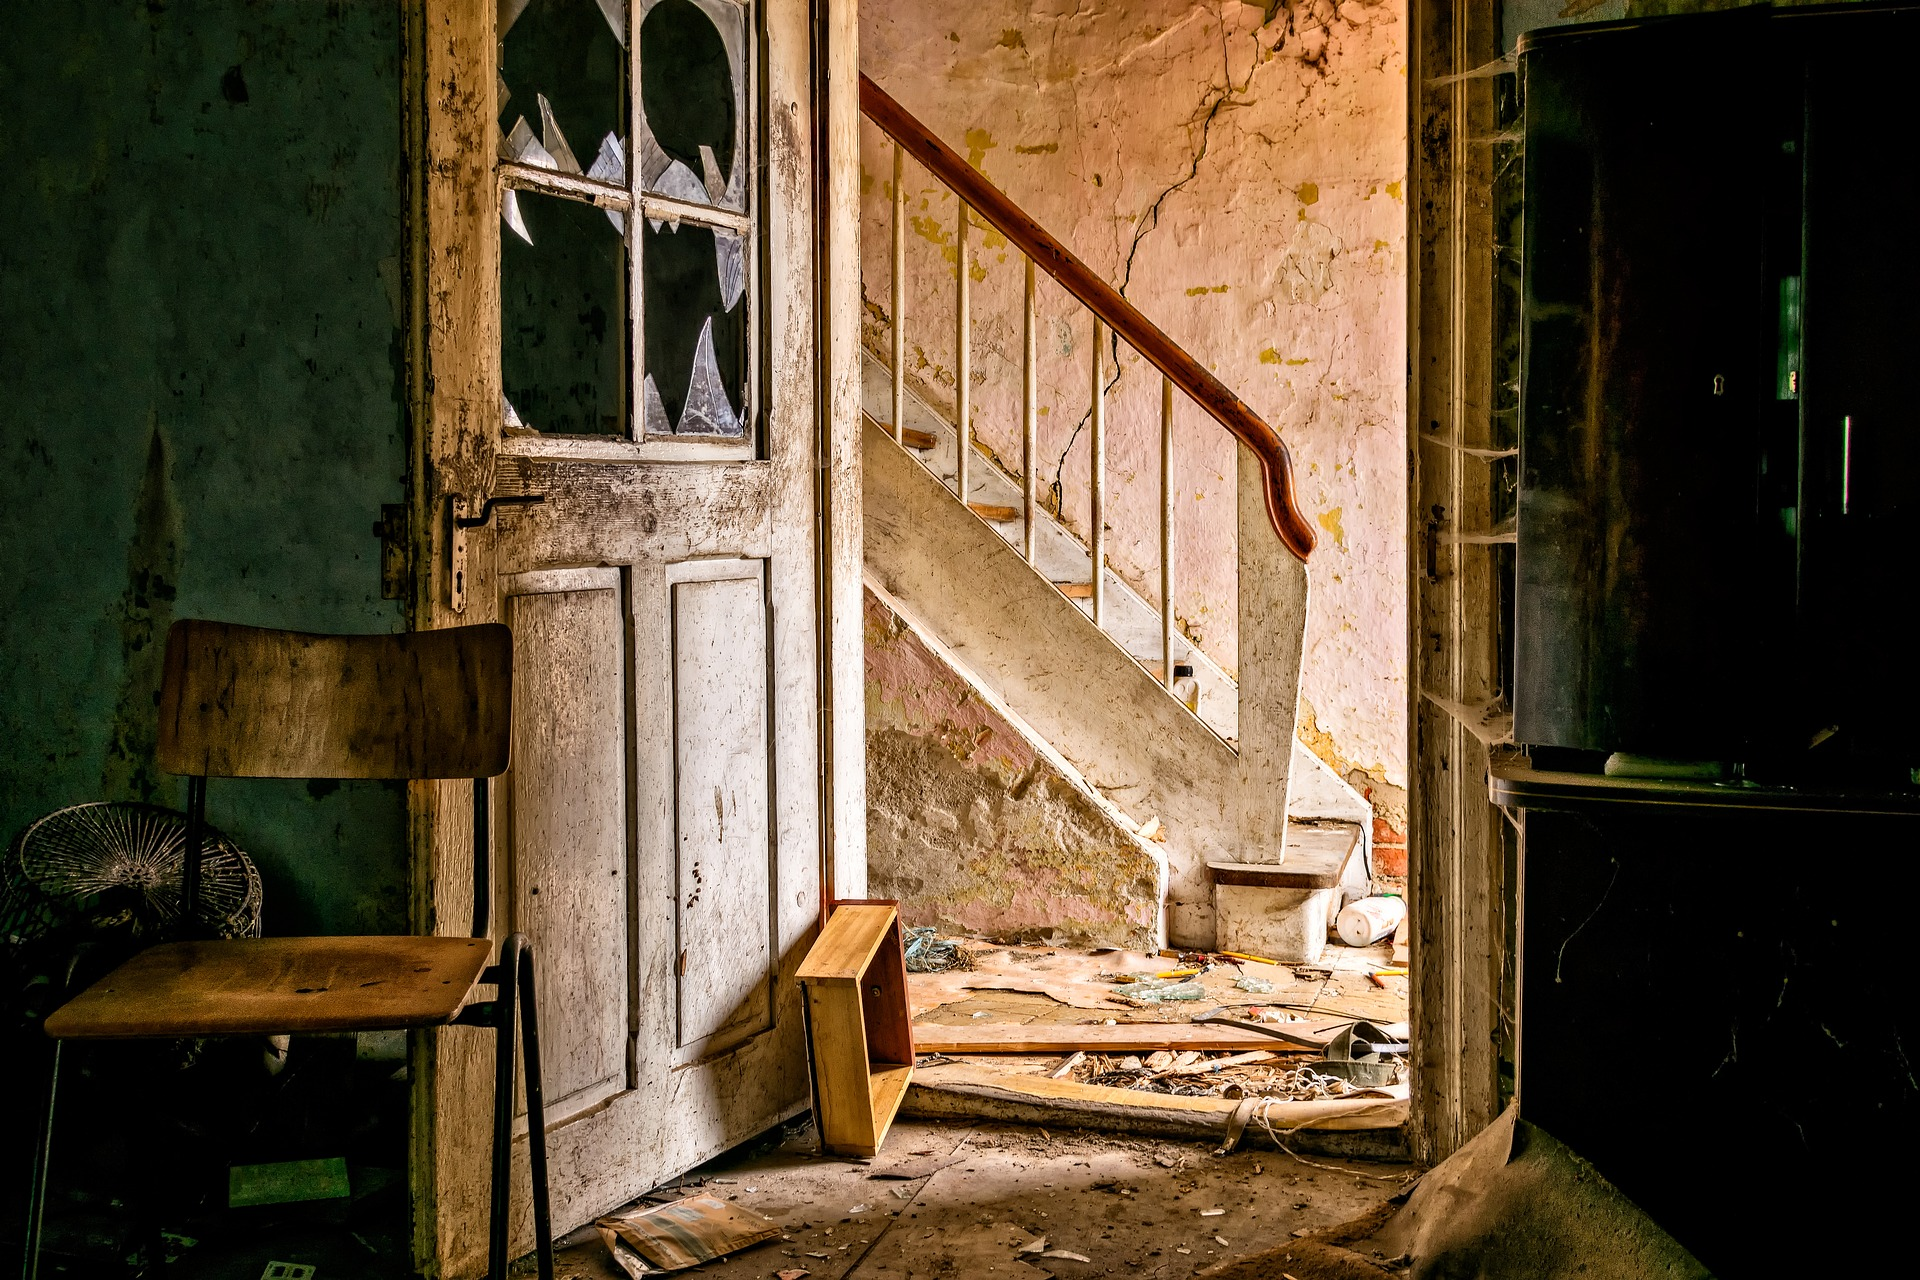 lost-places-3035877_1920.jpg